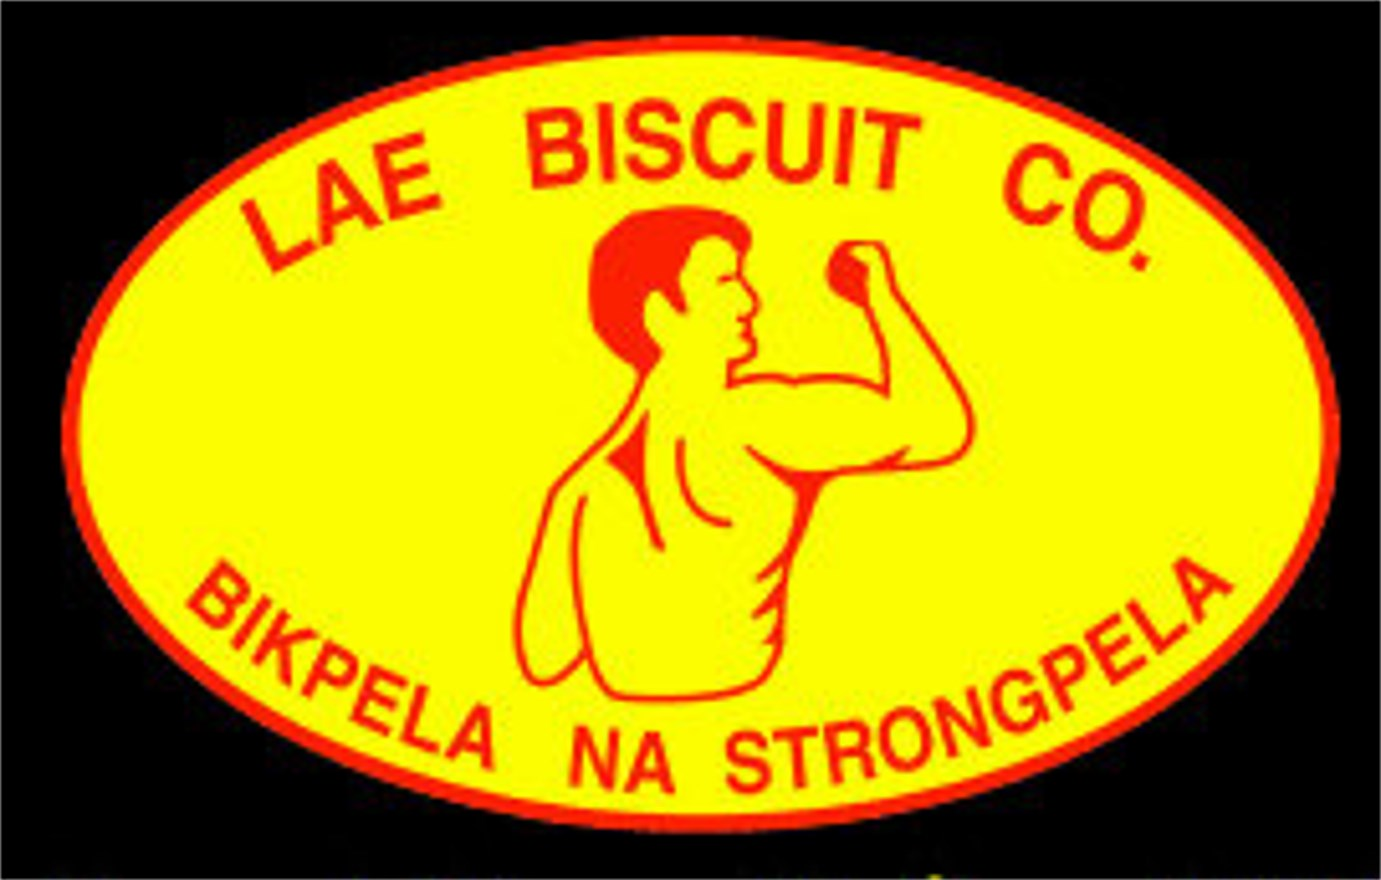 Lae Biscuit logo